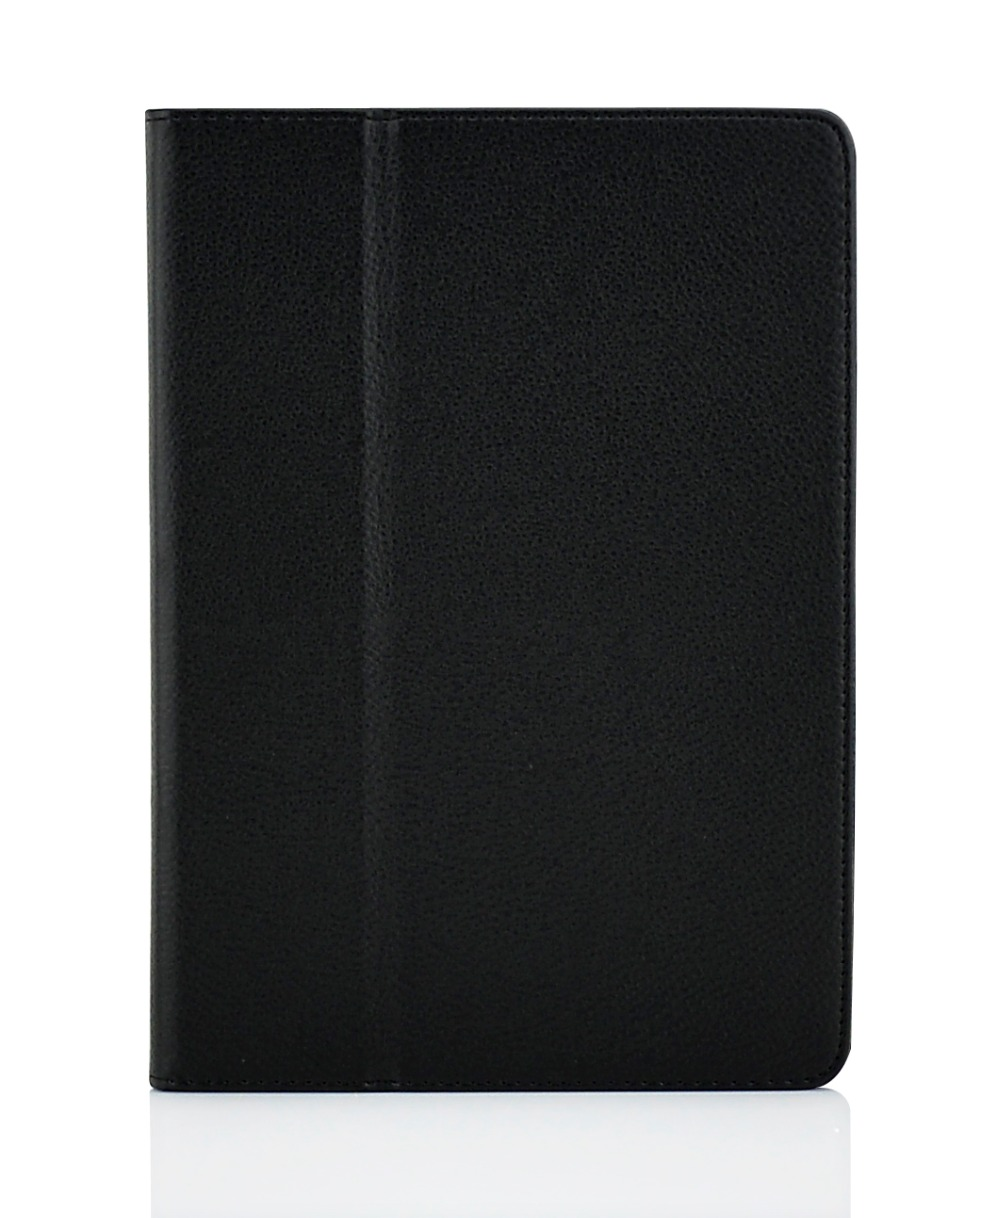 Case For Ipad 9.7 Inch 2017/Release 6Th Classic Style Smart Wake/Sleep Original 1:1 Stand Tablet Leather Air 1/2 Case